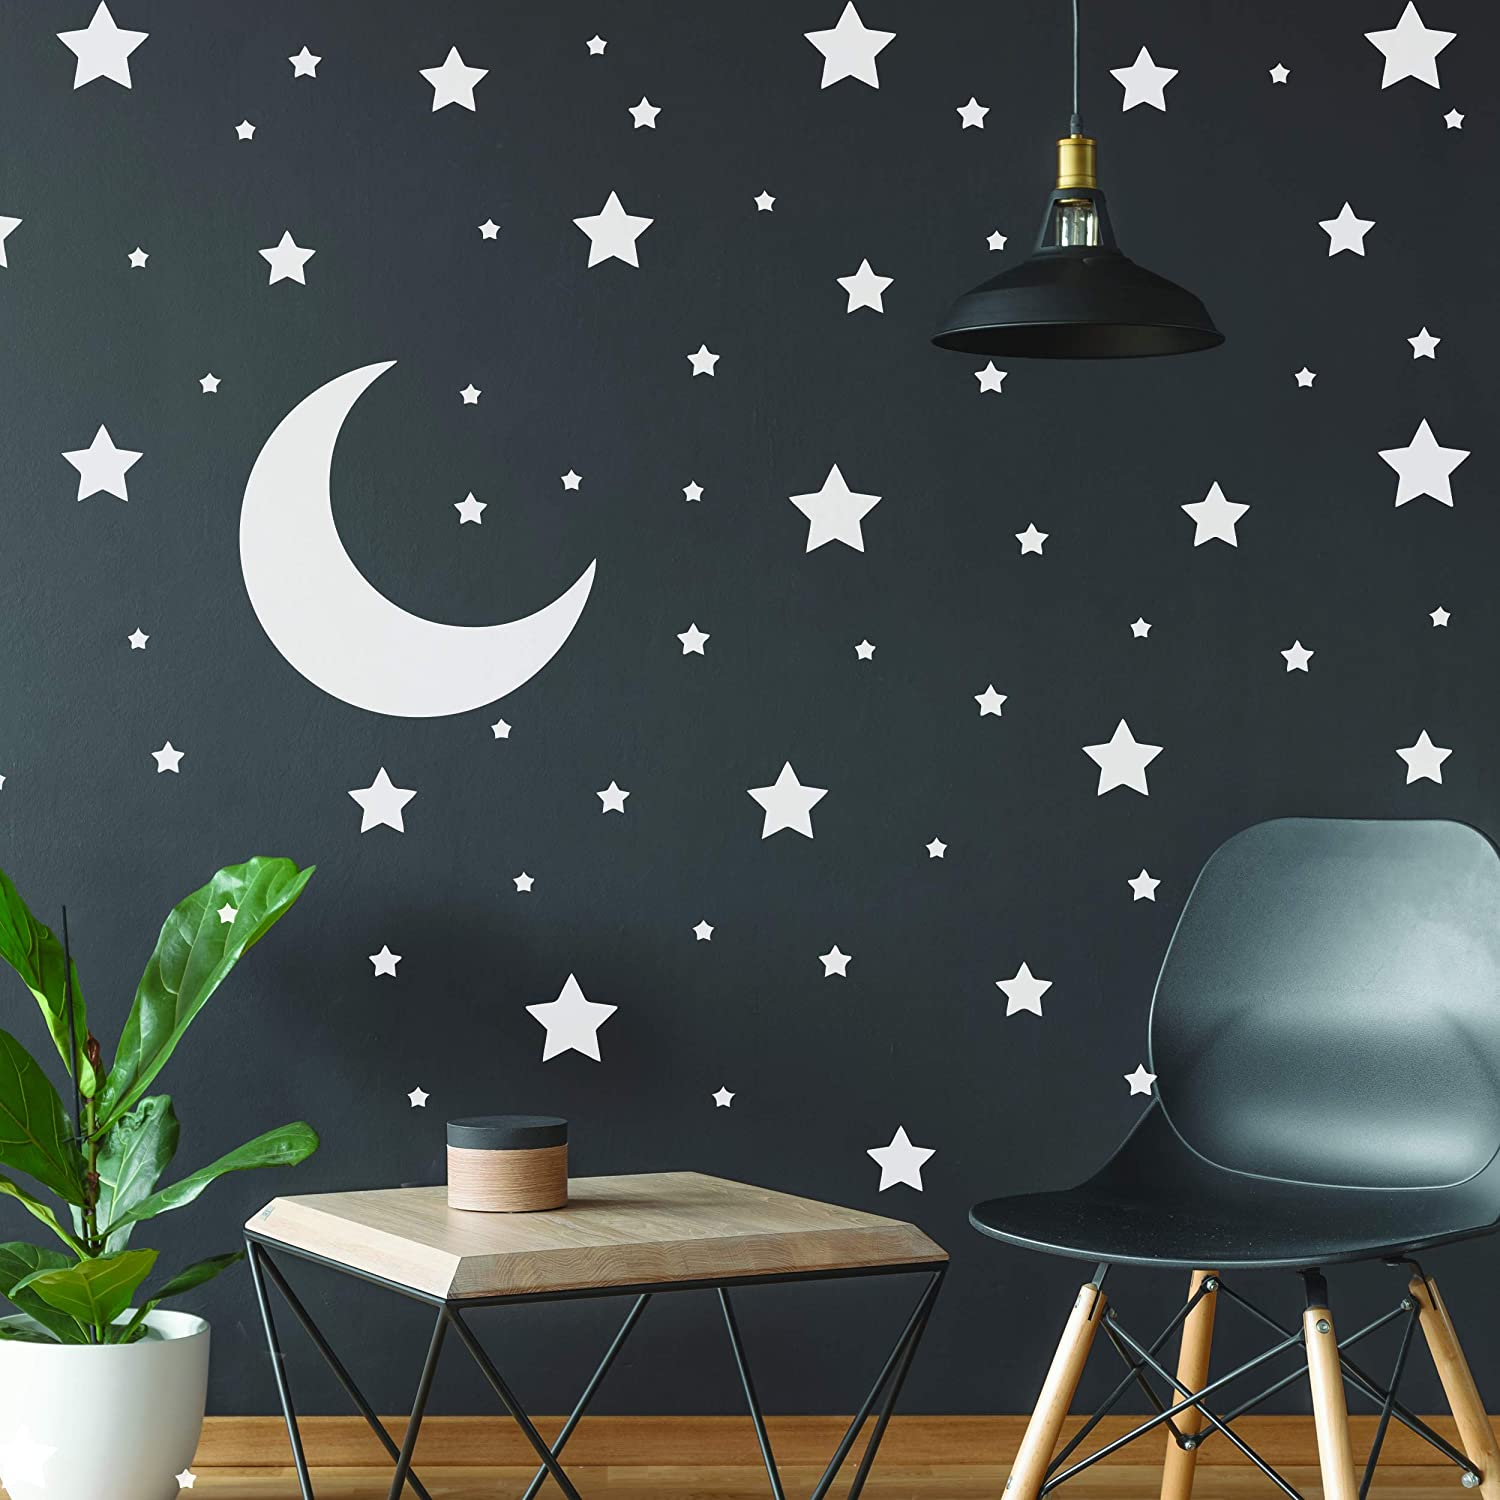 White Stars Stickers - Space Themed Bedroom Constellation Wallpaper Decor Decal - Star Moon Nursery Room Decals for Wall - 220 Stickers